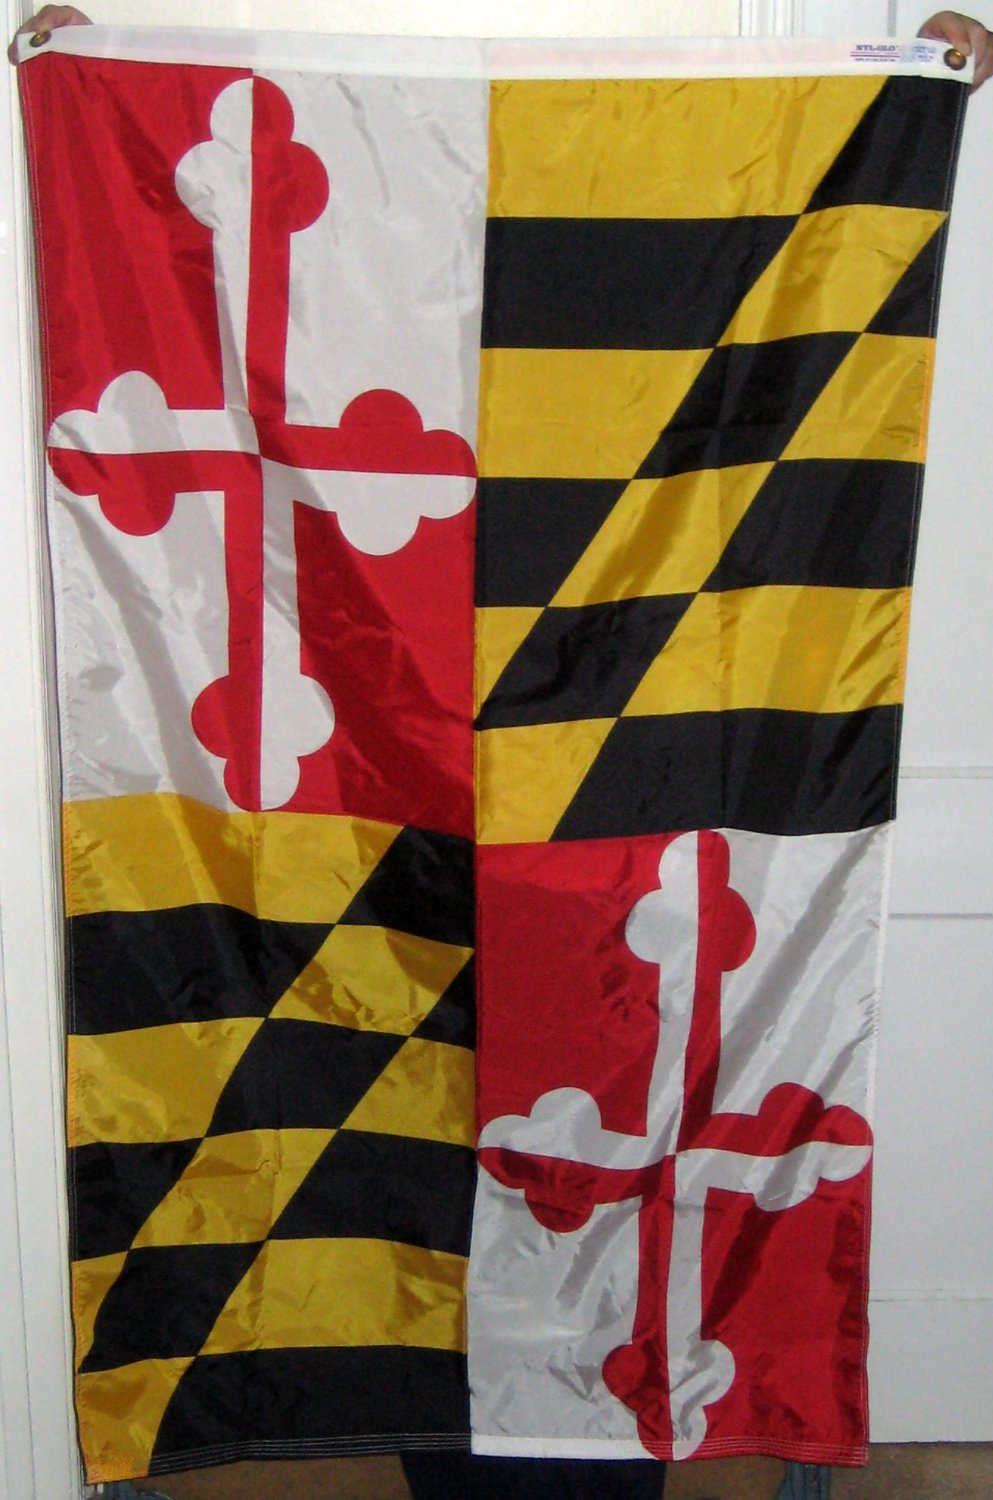 Maryland State Flag 3 x 5 Feet Nyl Glo Annin and Company Nylon Bunting Grommets Old Line